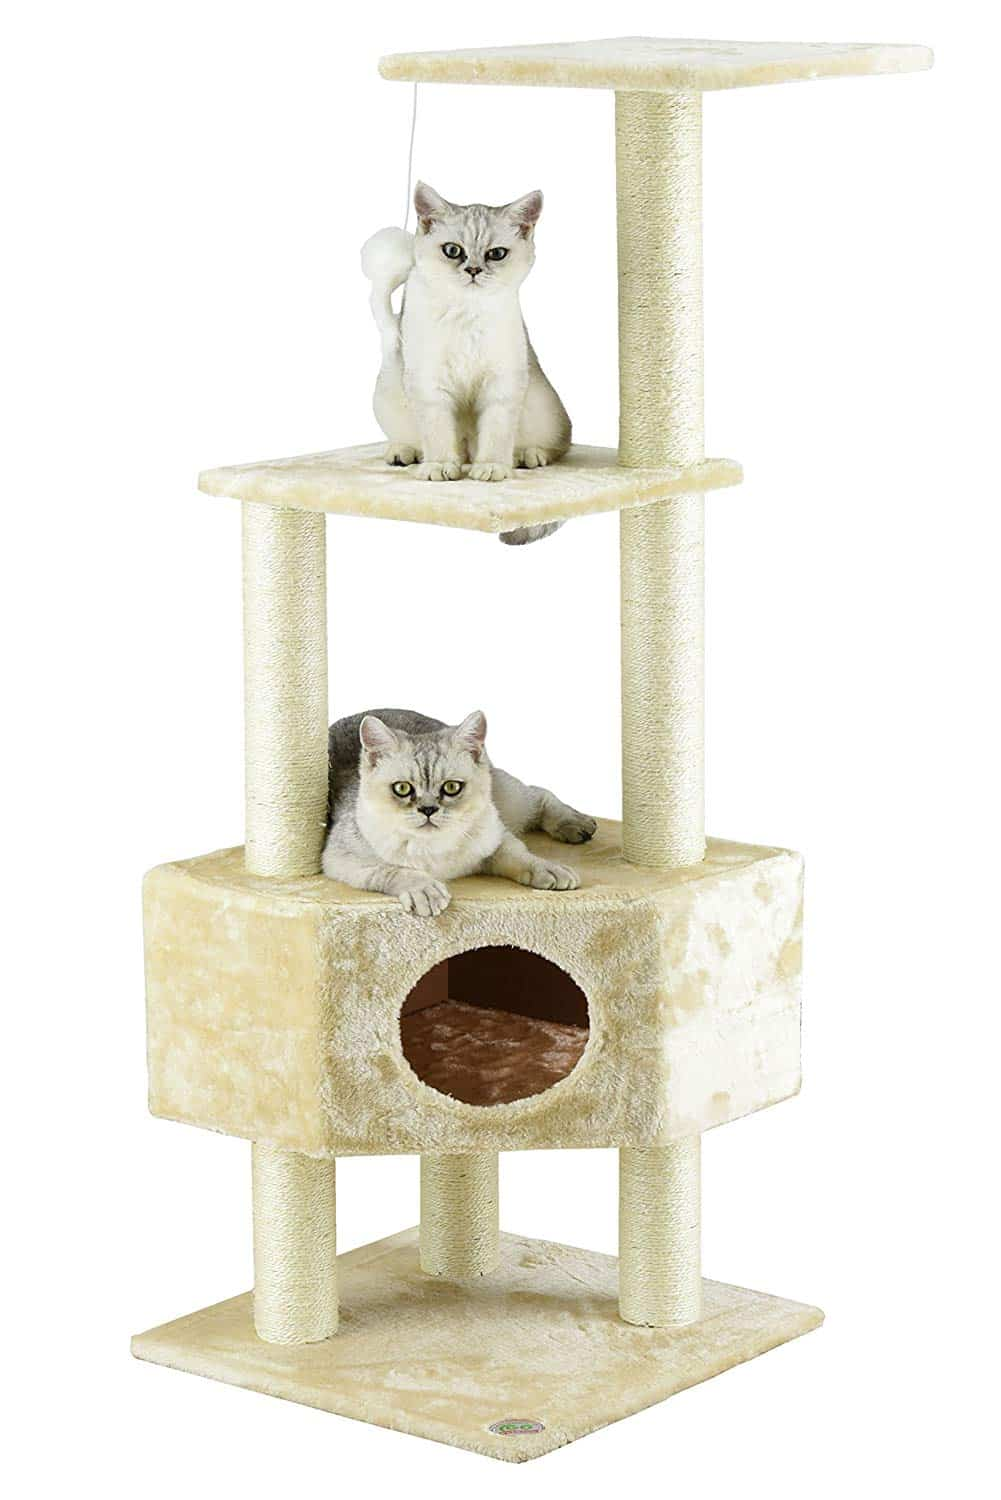 6. GoPet Club Cat Tree